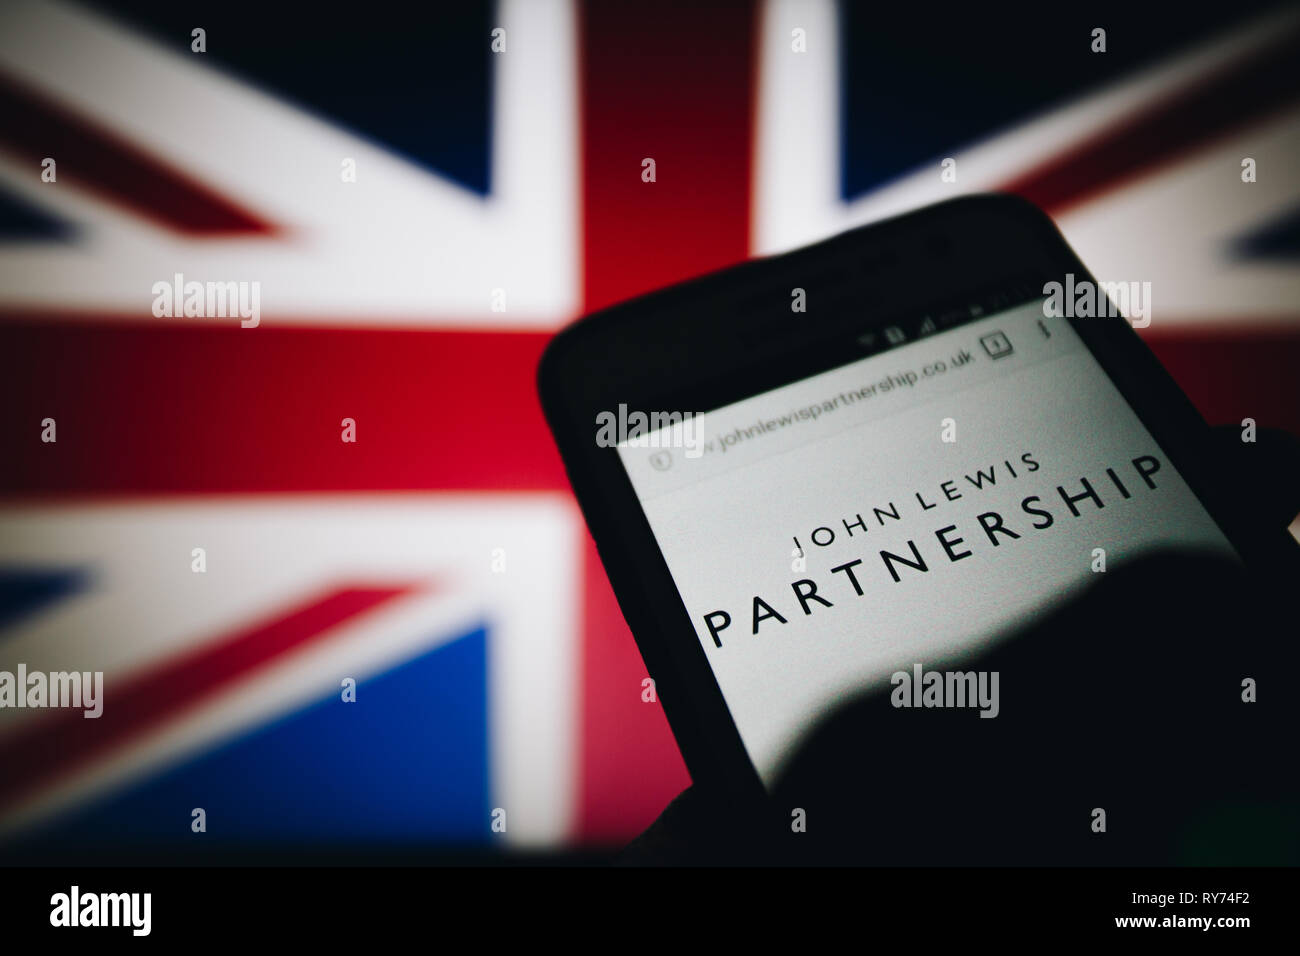 John Lewis Partnership (JLP), an employee owned UK company. Logo on its website is seen on a smartphone display - Stock Image